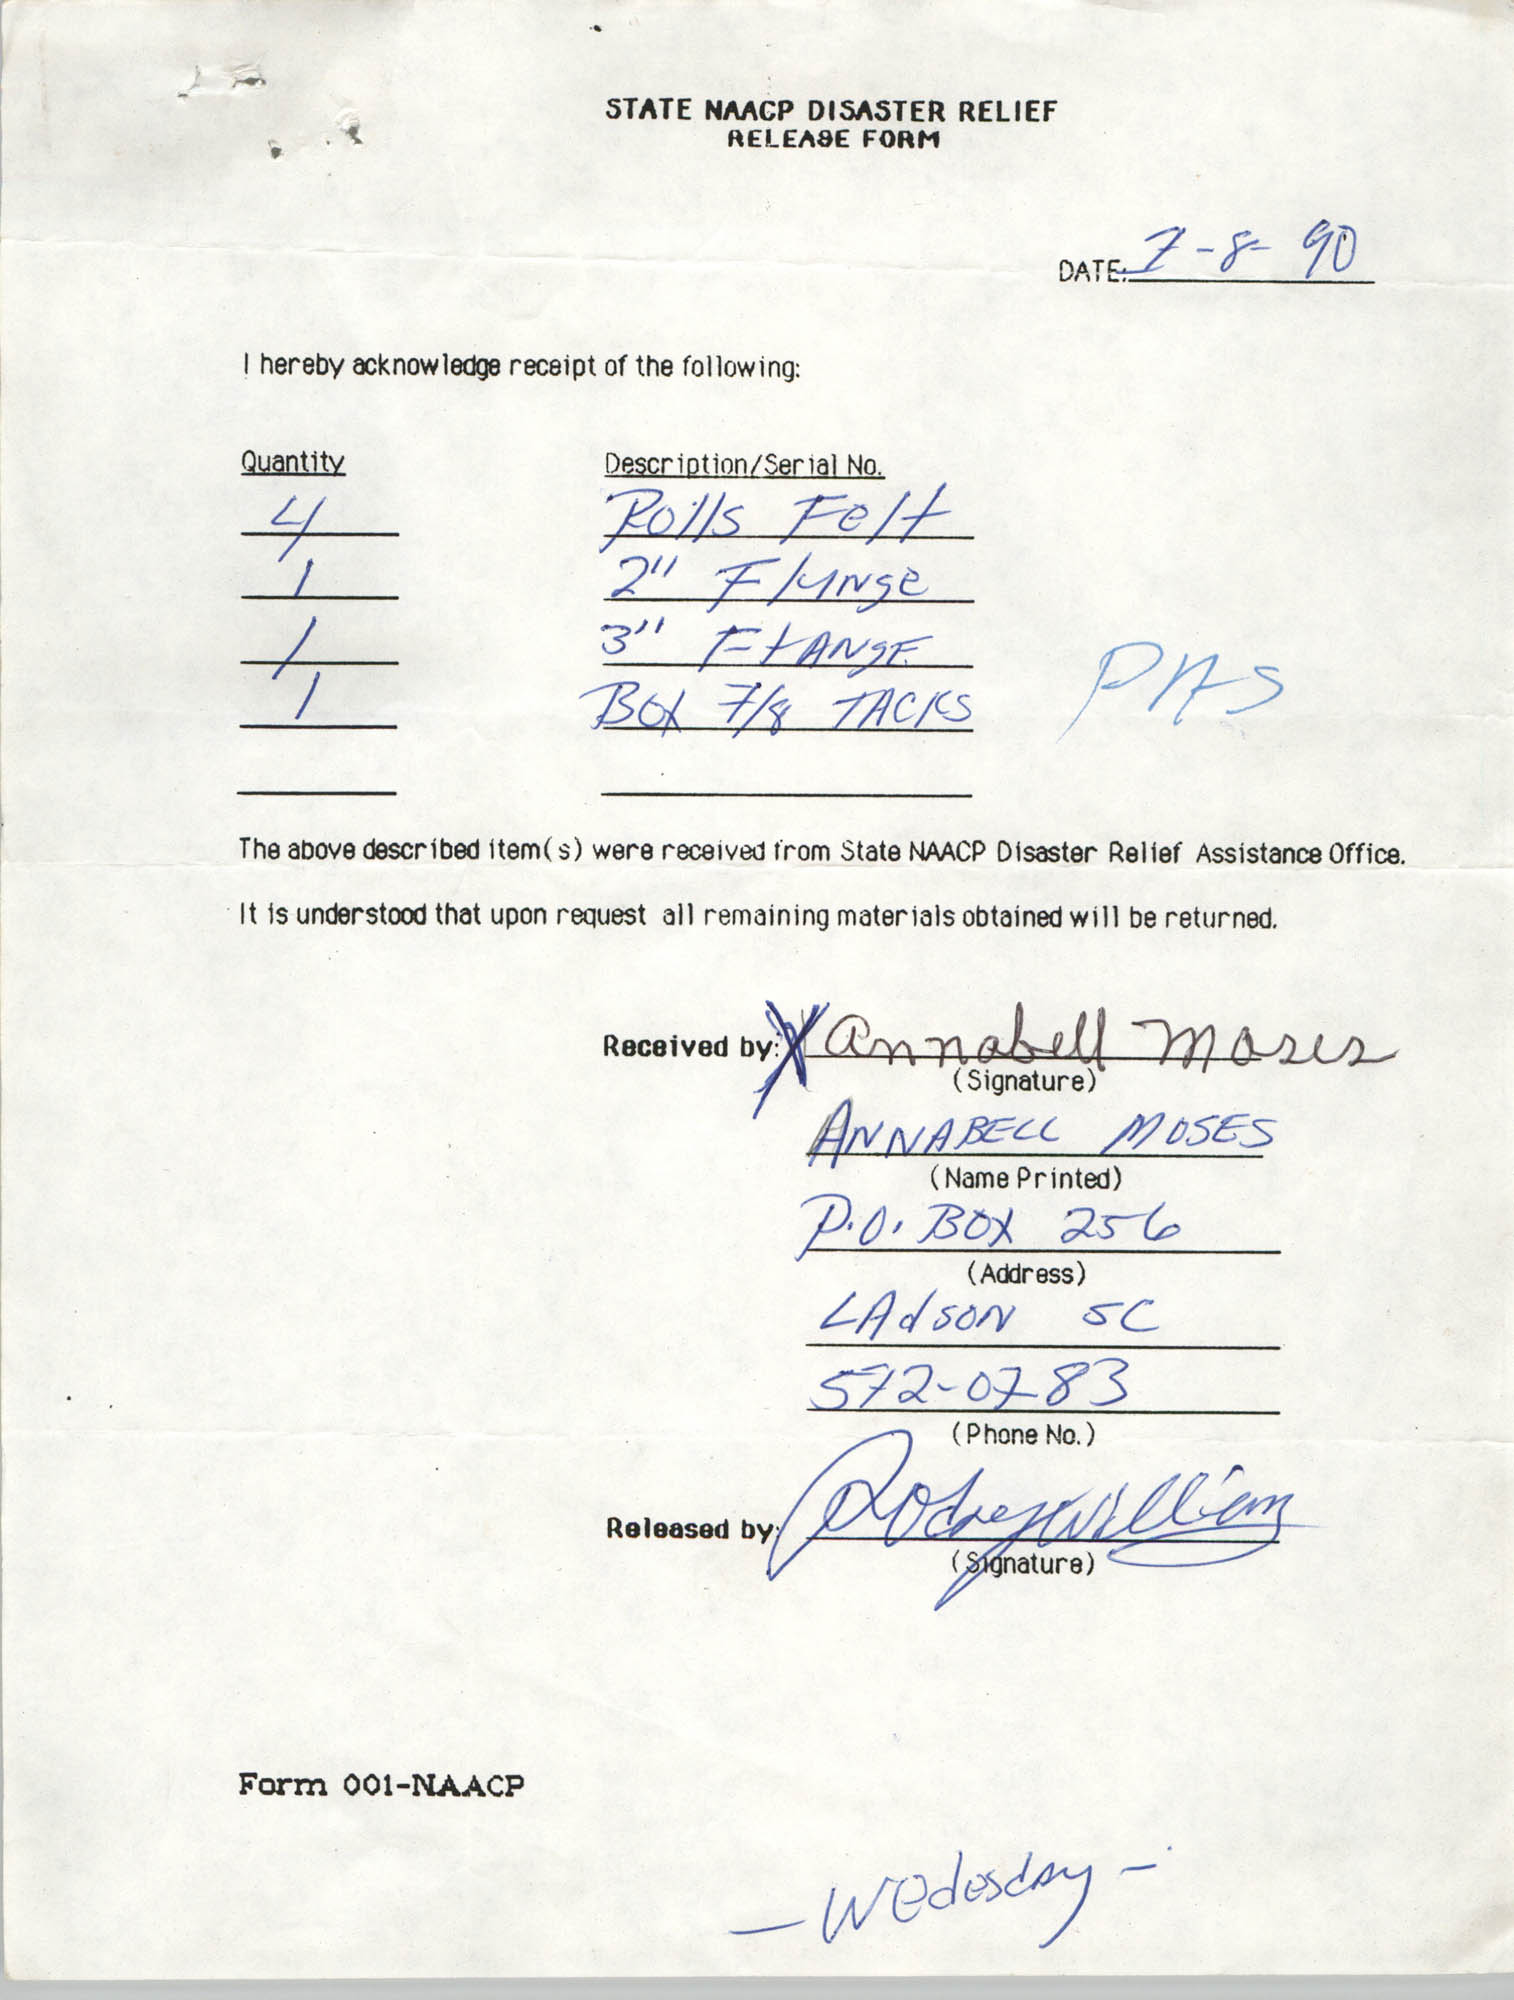 State NAACP Disaster Relief, Hurricane Huge Release Form, 1989, Page 3